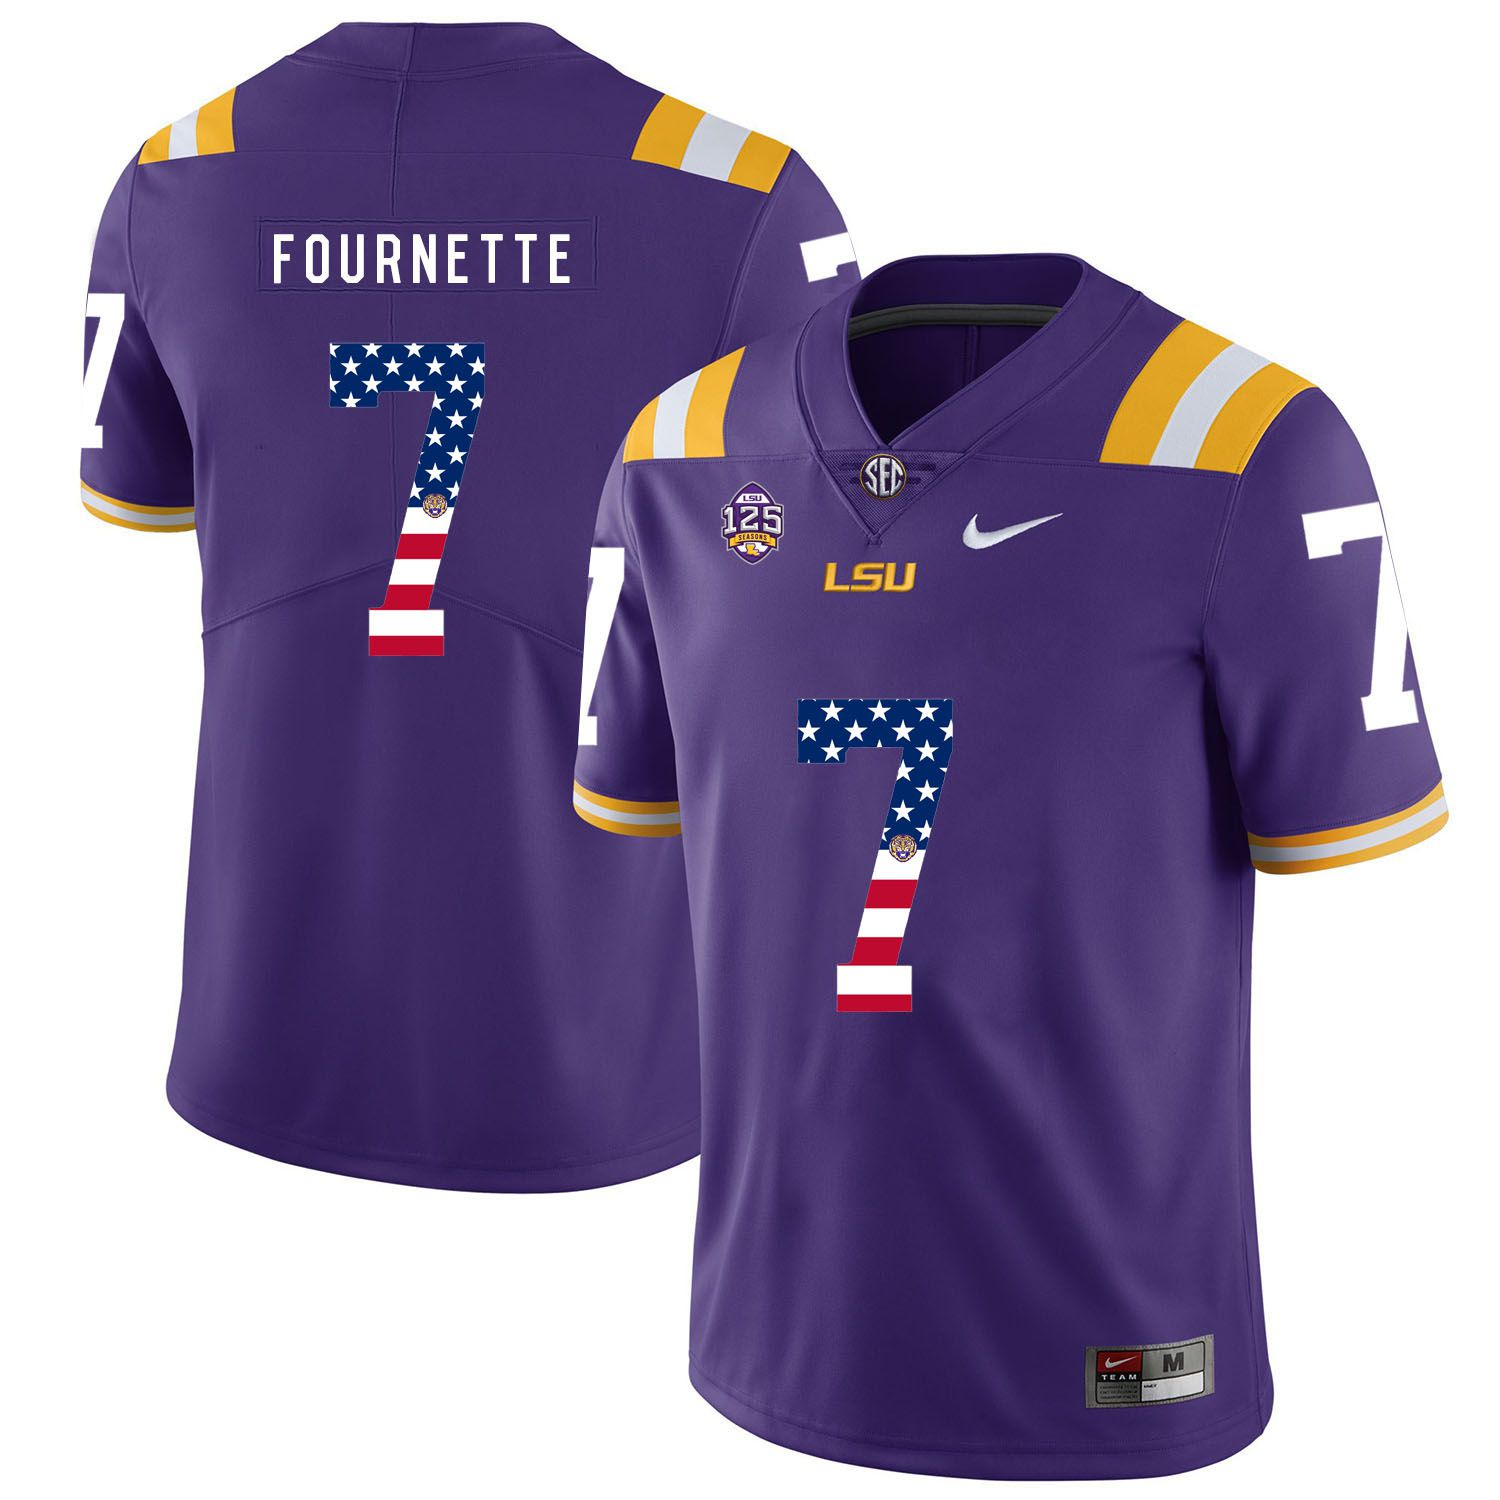 Men LSU Tigers 7 Fournette Purple Flag Customized NCAA Jerseys